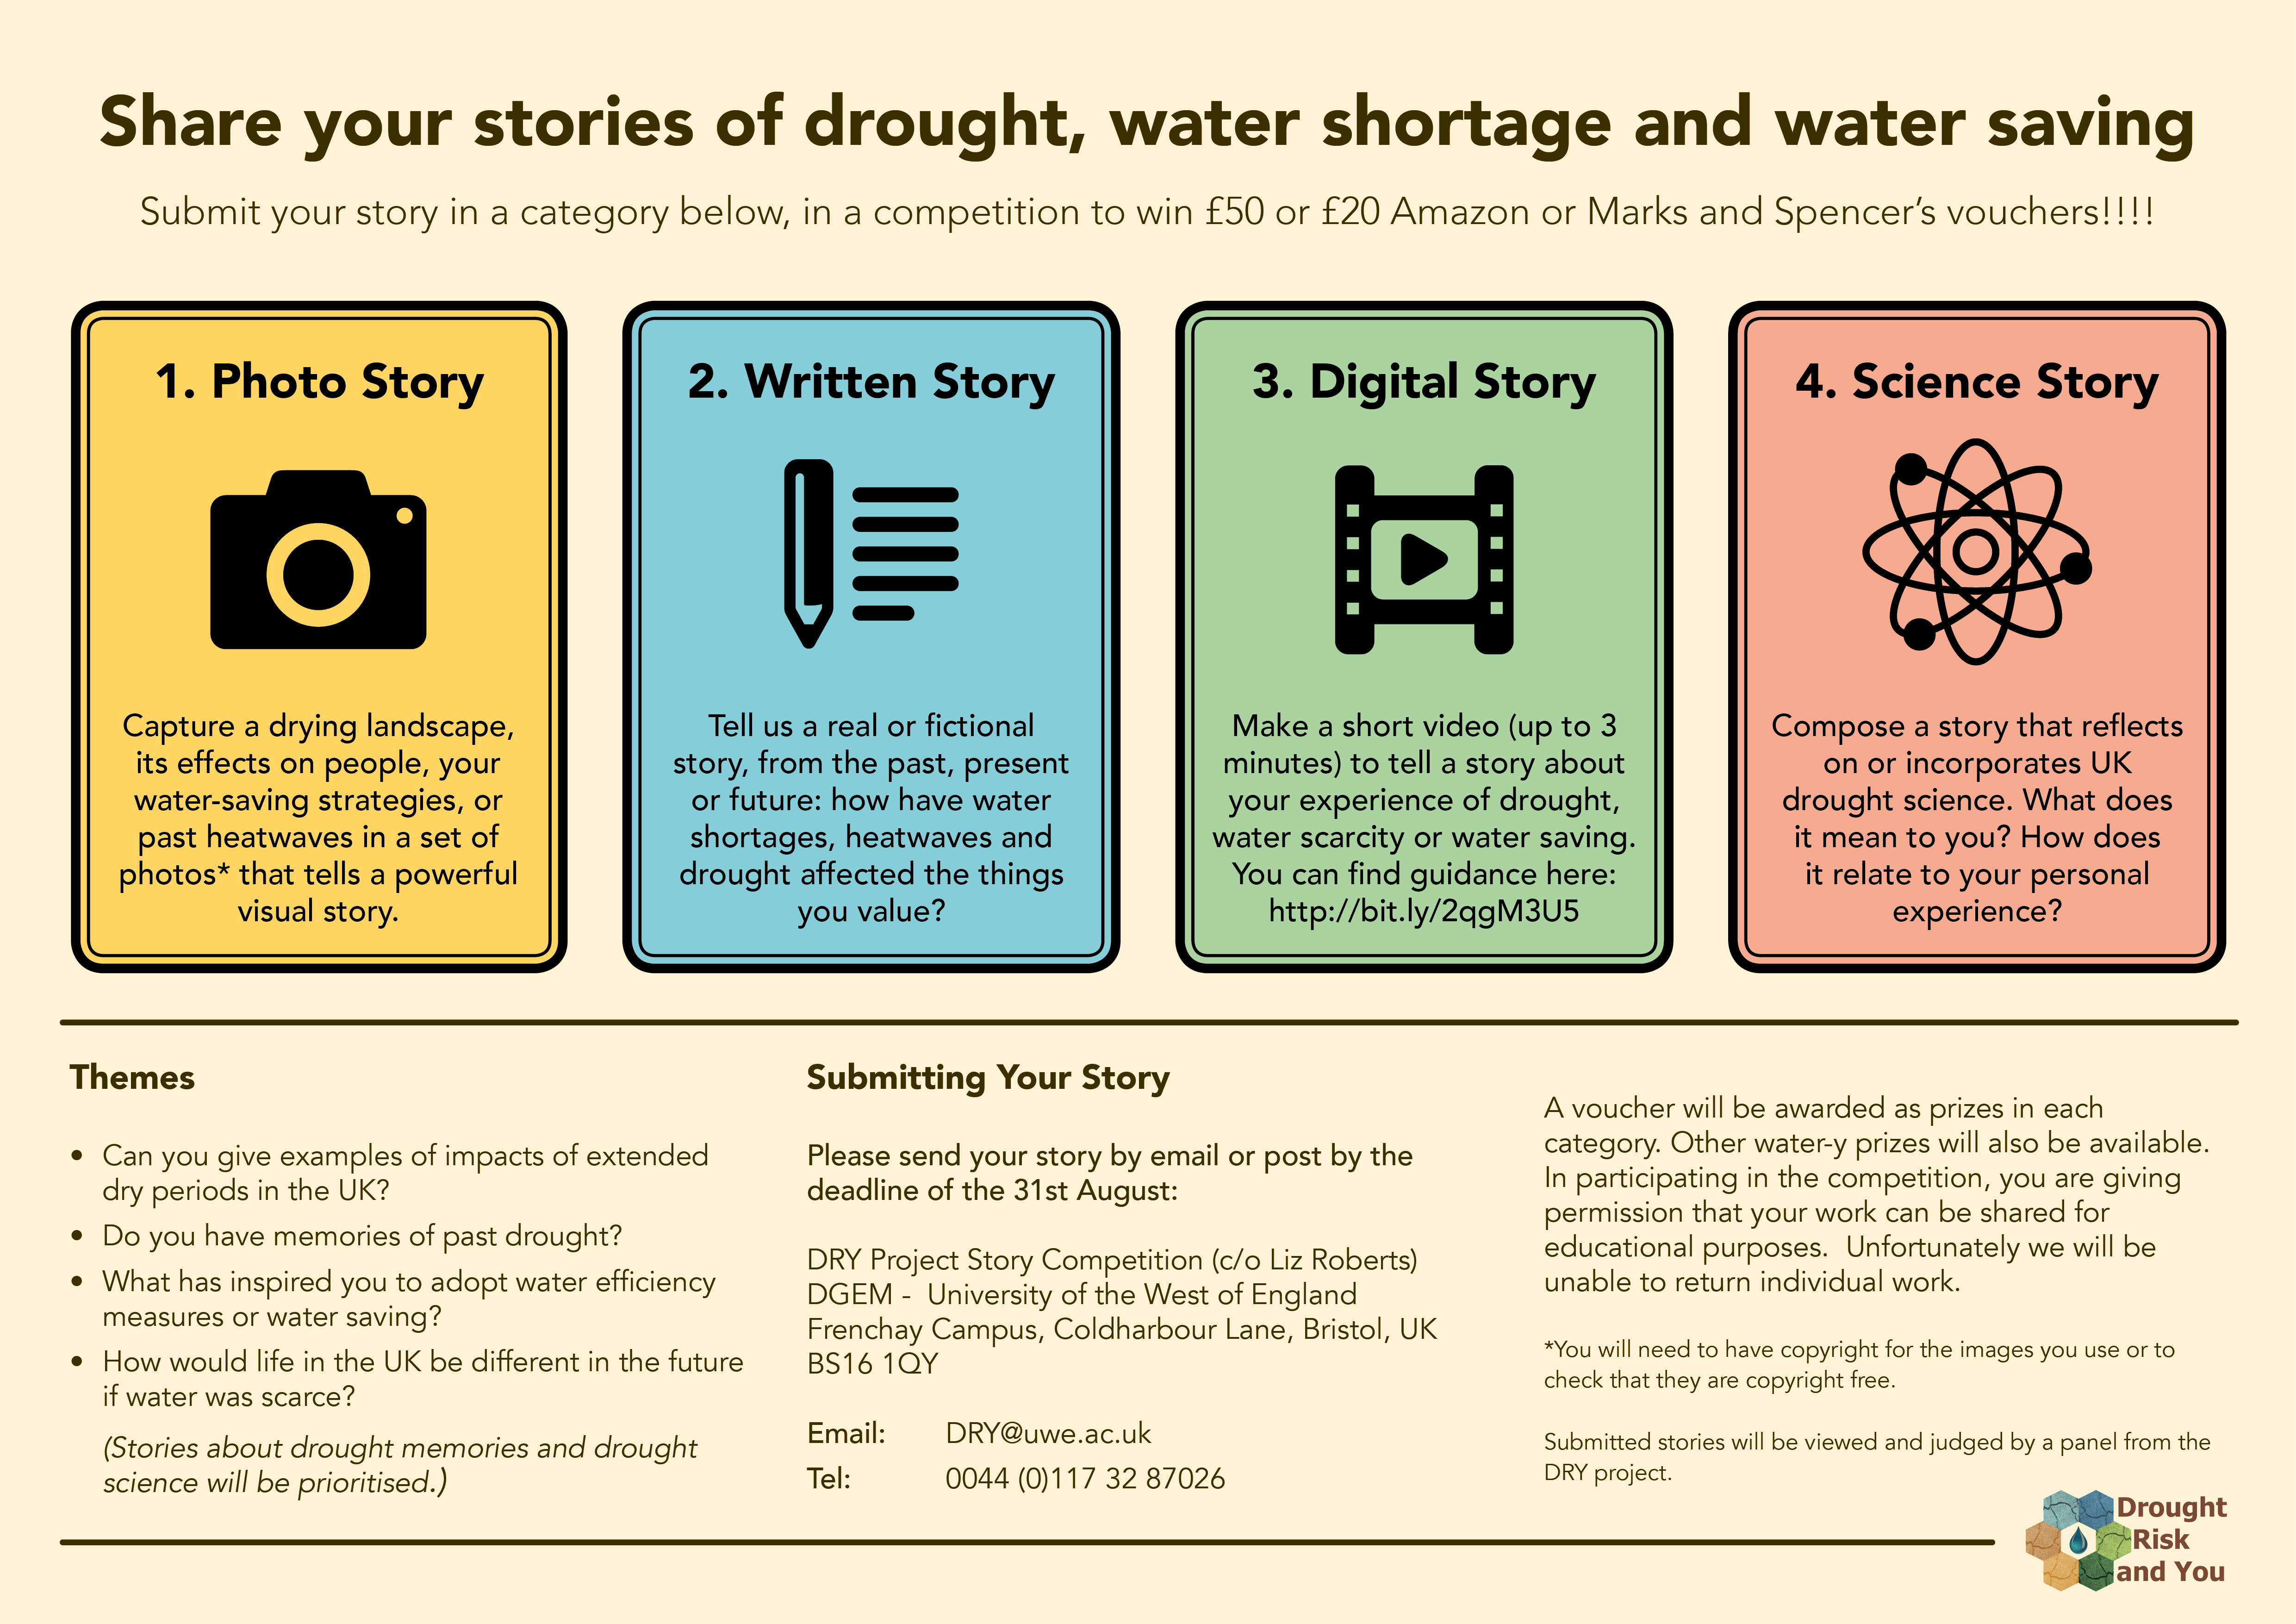 de7c94c5a Competition! Share your stories of drought…